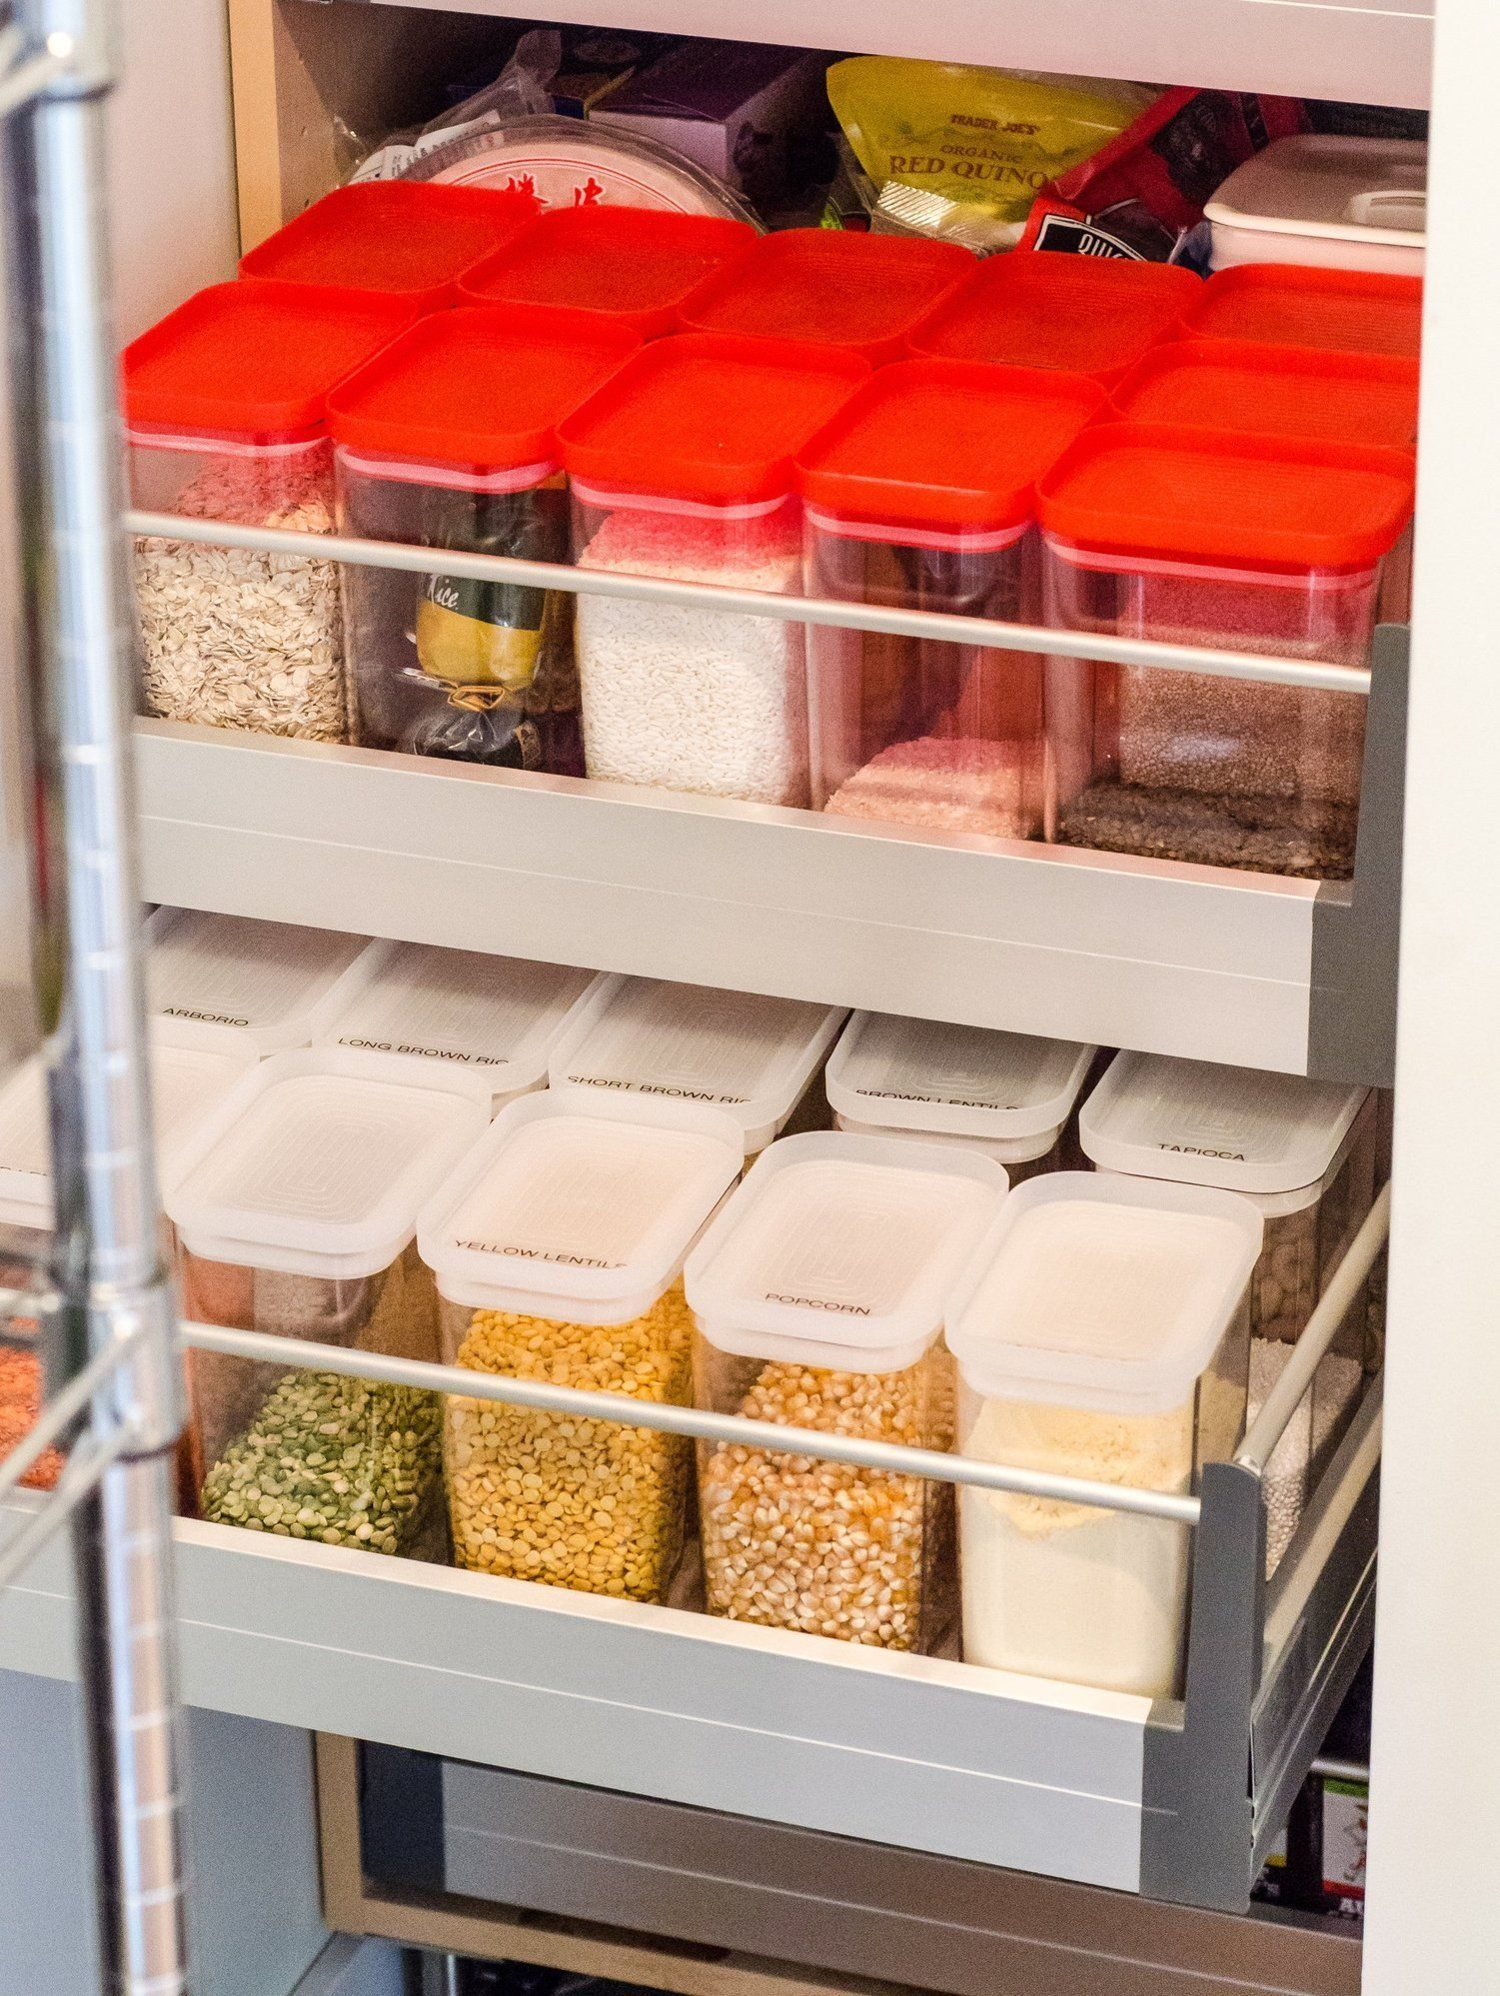 Why You Should Use Square Or Rectangular Food Storage Containers